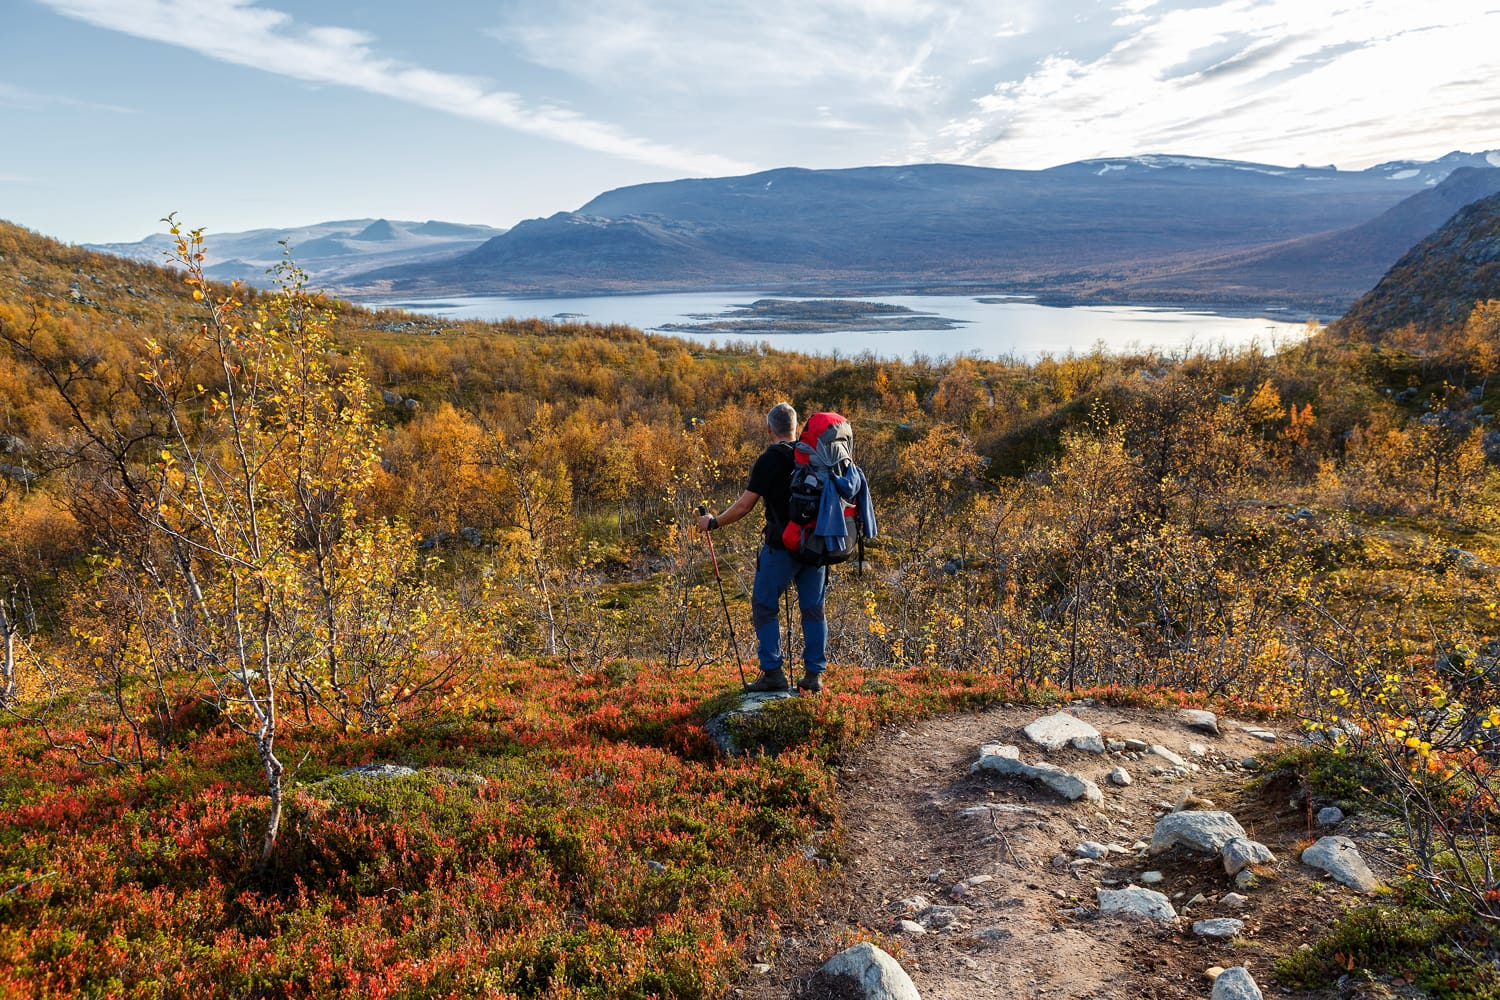 Hiking in Sweden on the Kungsleden in Autumn